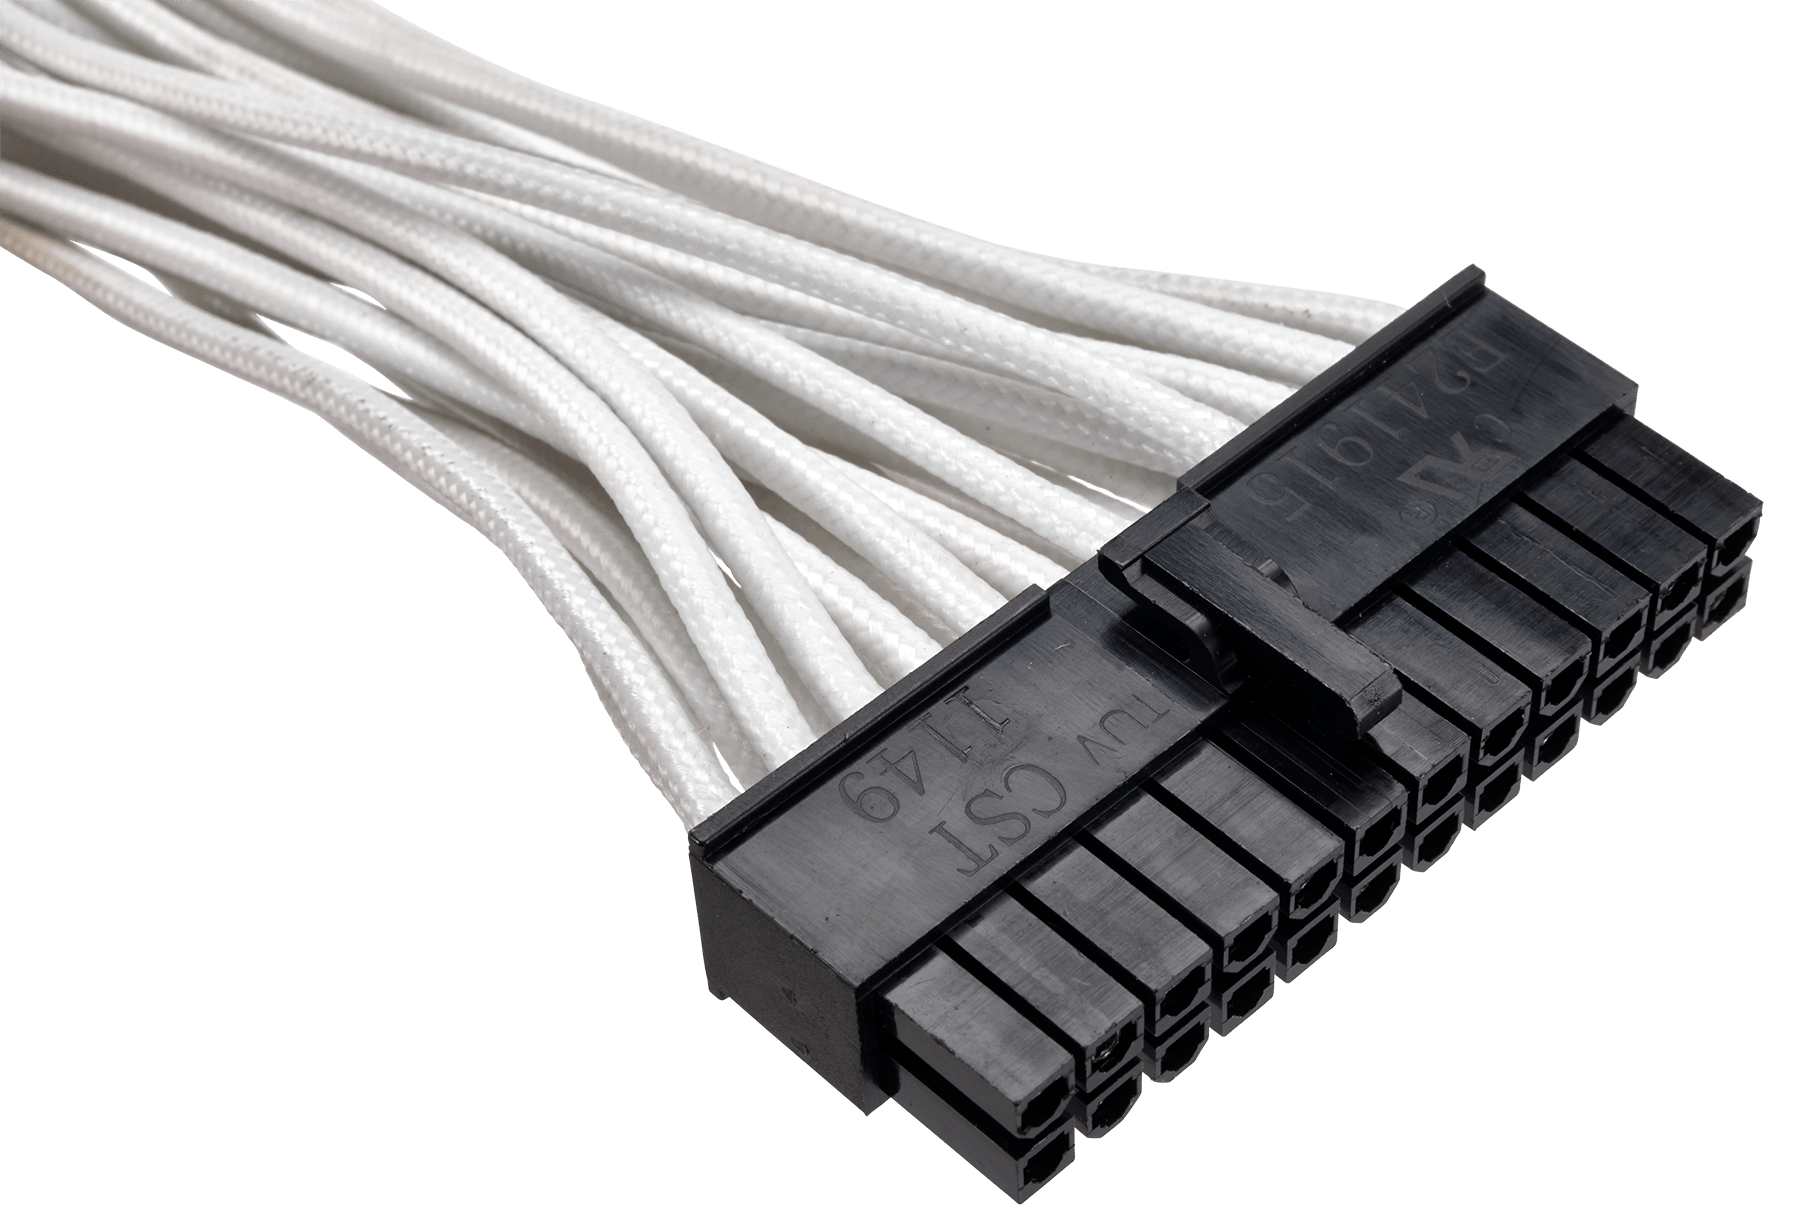 Premium Individually Sleeved Atx 24 Pin Cable Type 4 Generation 3 Cables Plus Usa Fiber Optic Glass Attributes And Characteristics Features